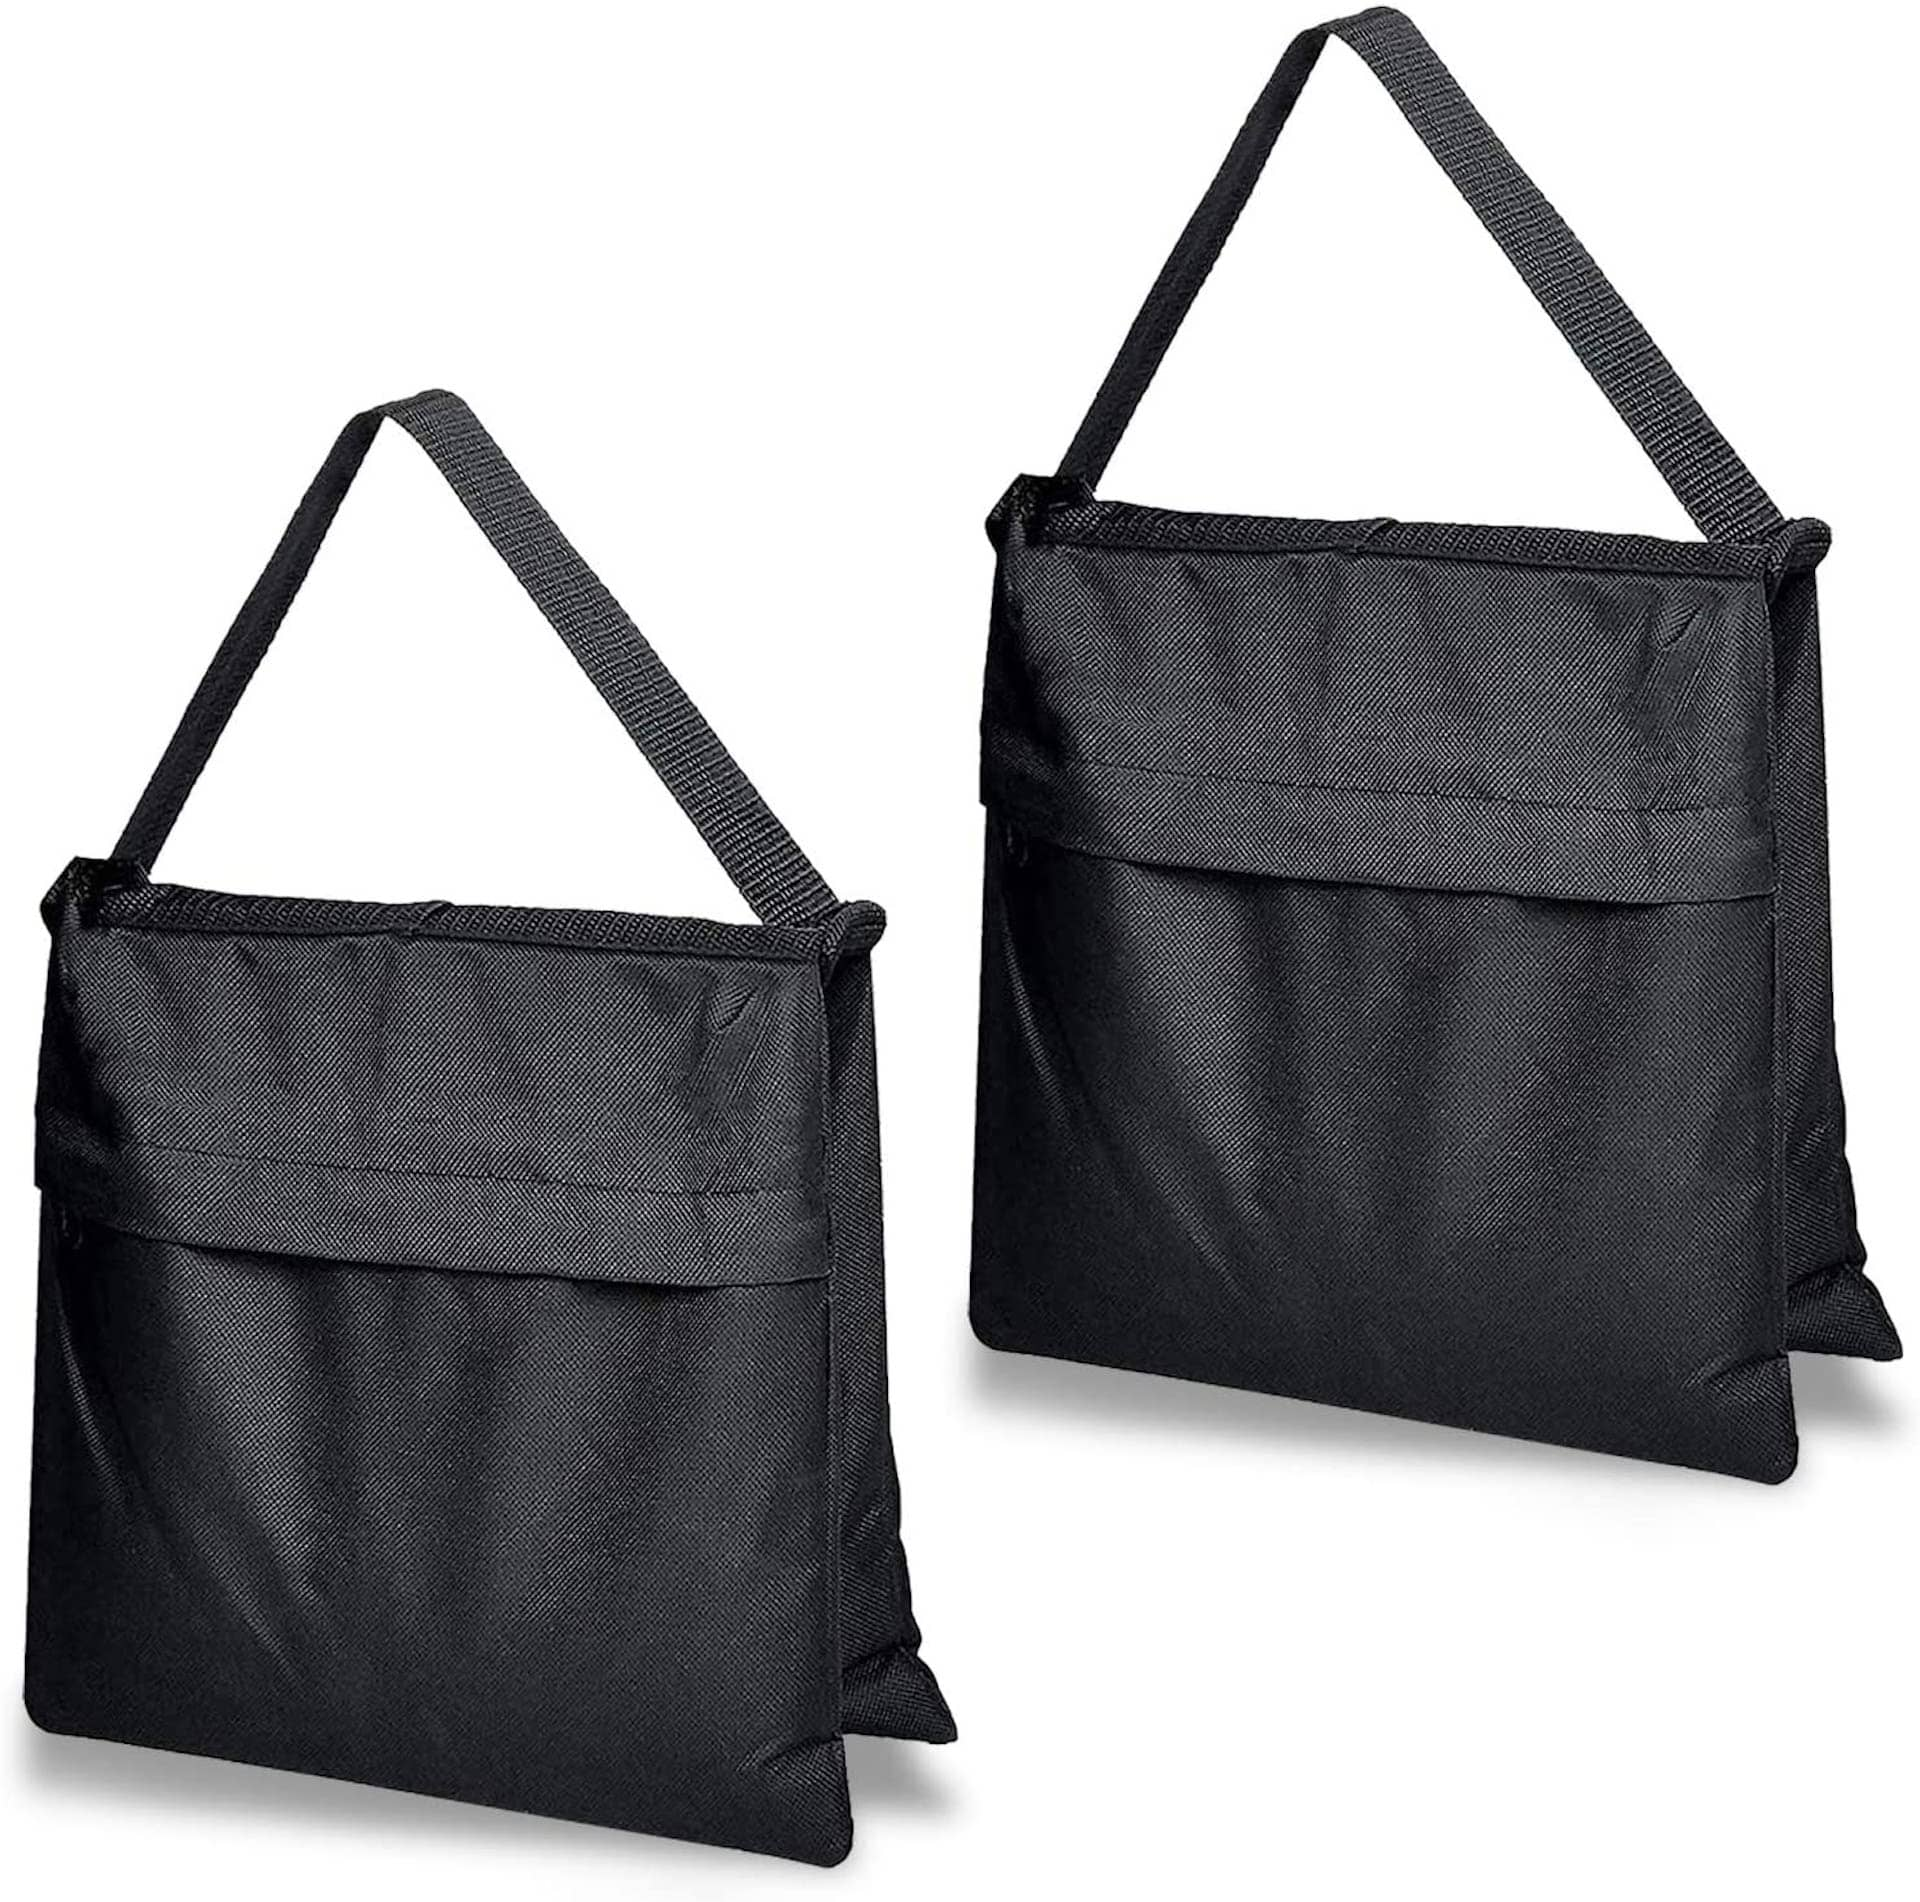 Best Photo Gifts for Photographers - Ideas Photographer Lovers - Filmmaking Sandbags